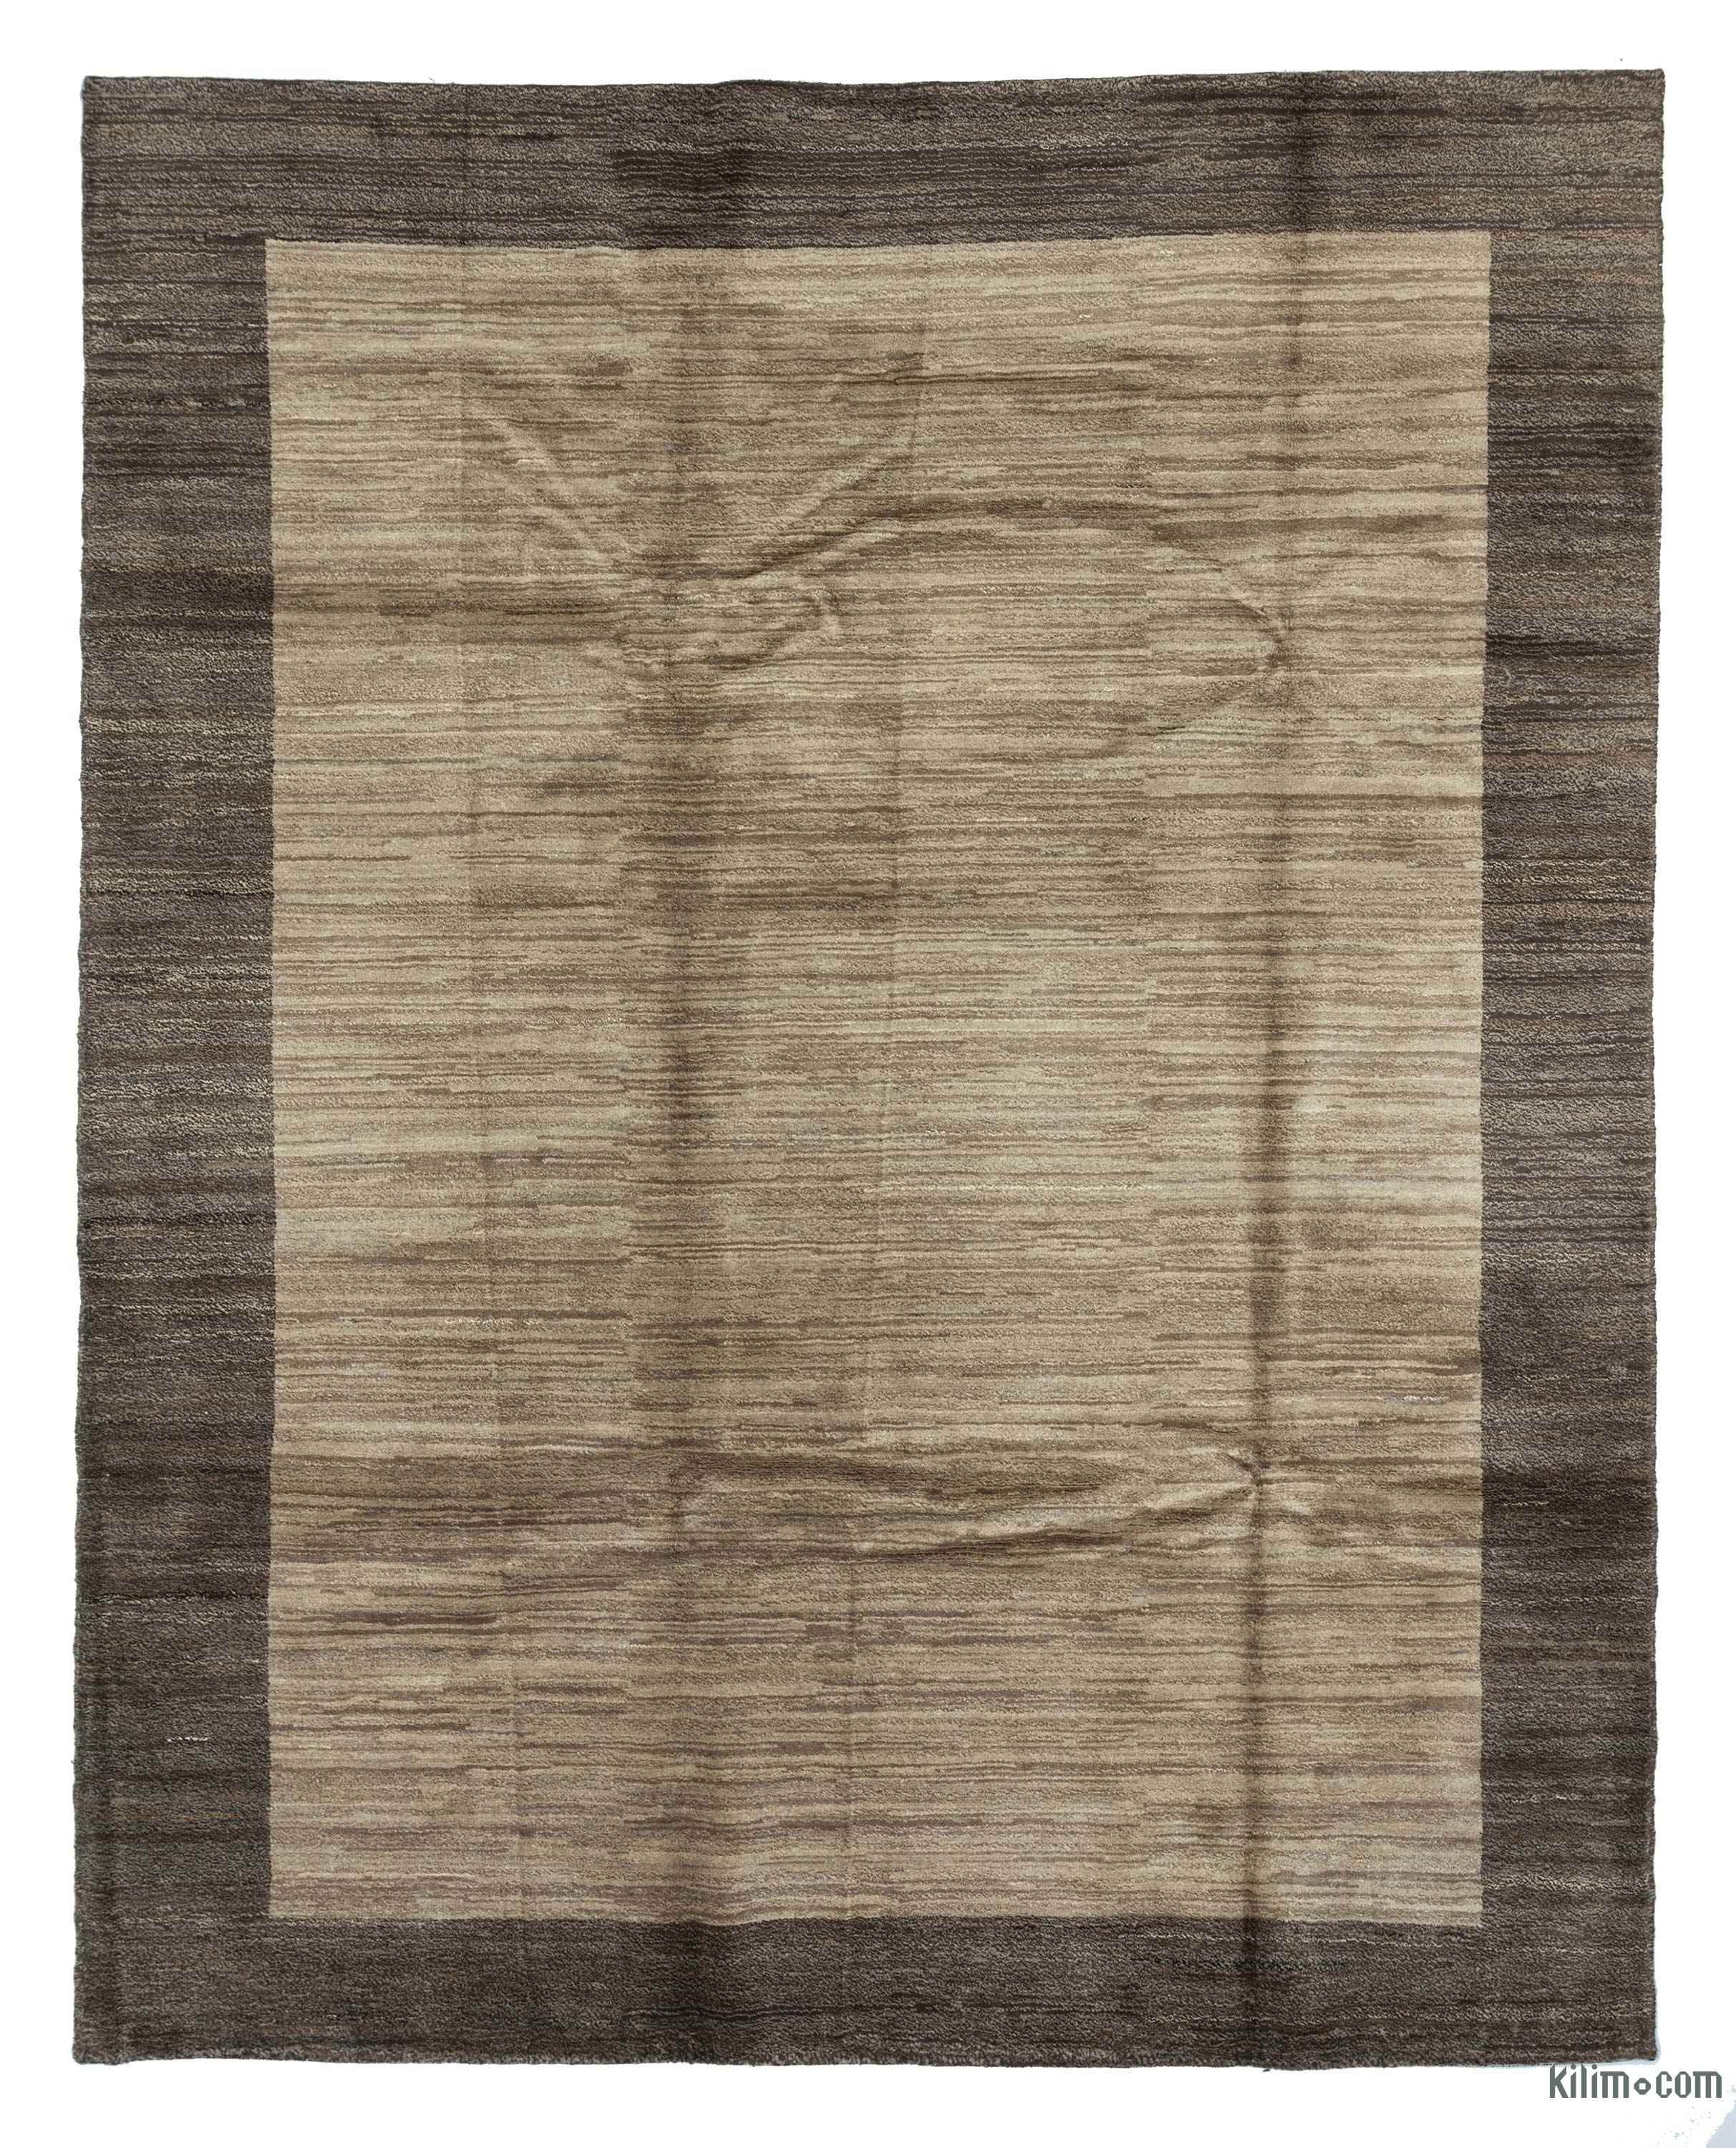 K0020233 New Persian Gabbeh Rug Kilim Rugs Overdyed Vintage Inside Gabbeh Rugs (Image 6 of 15)